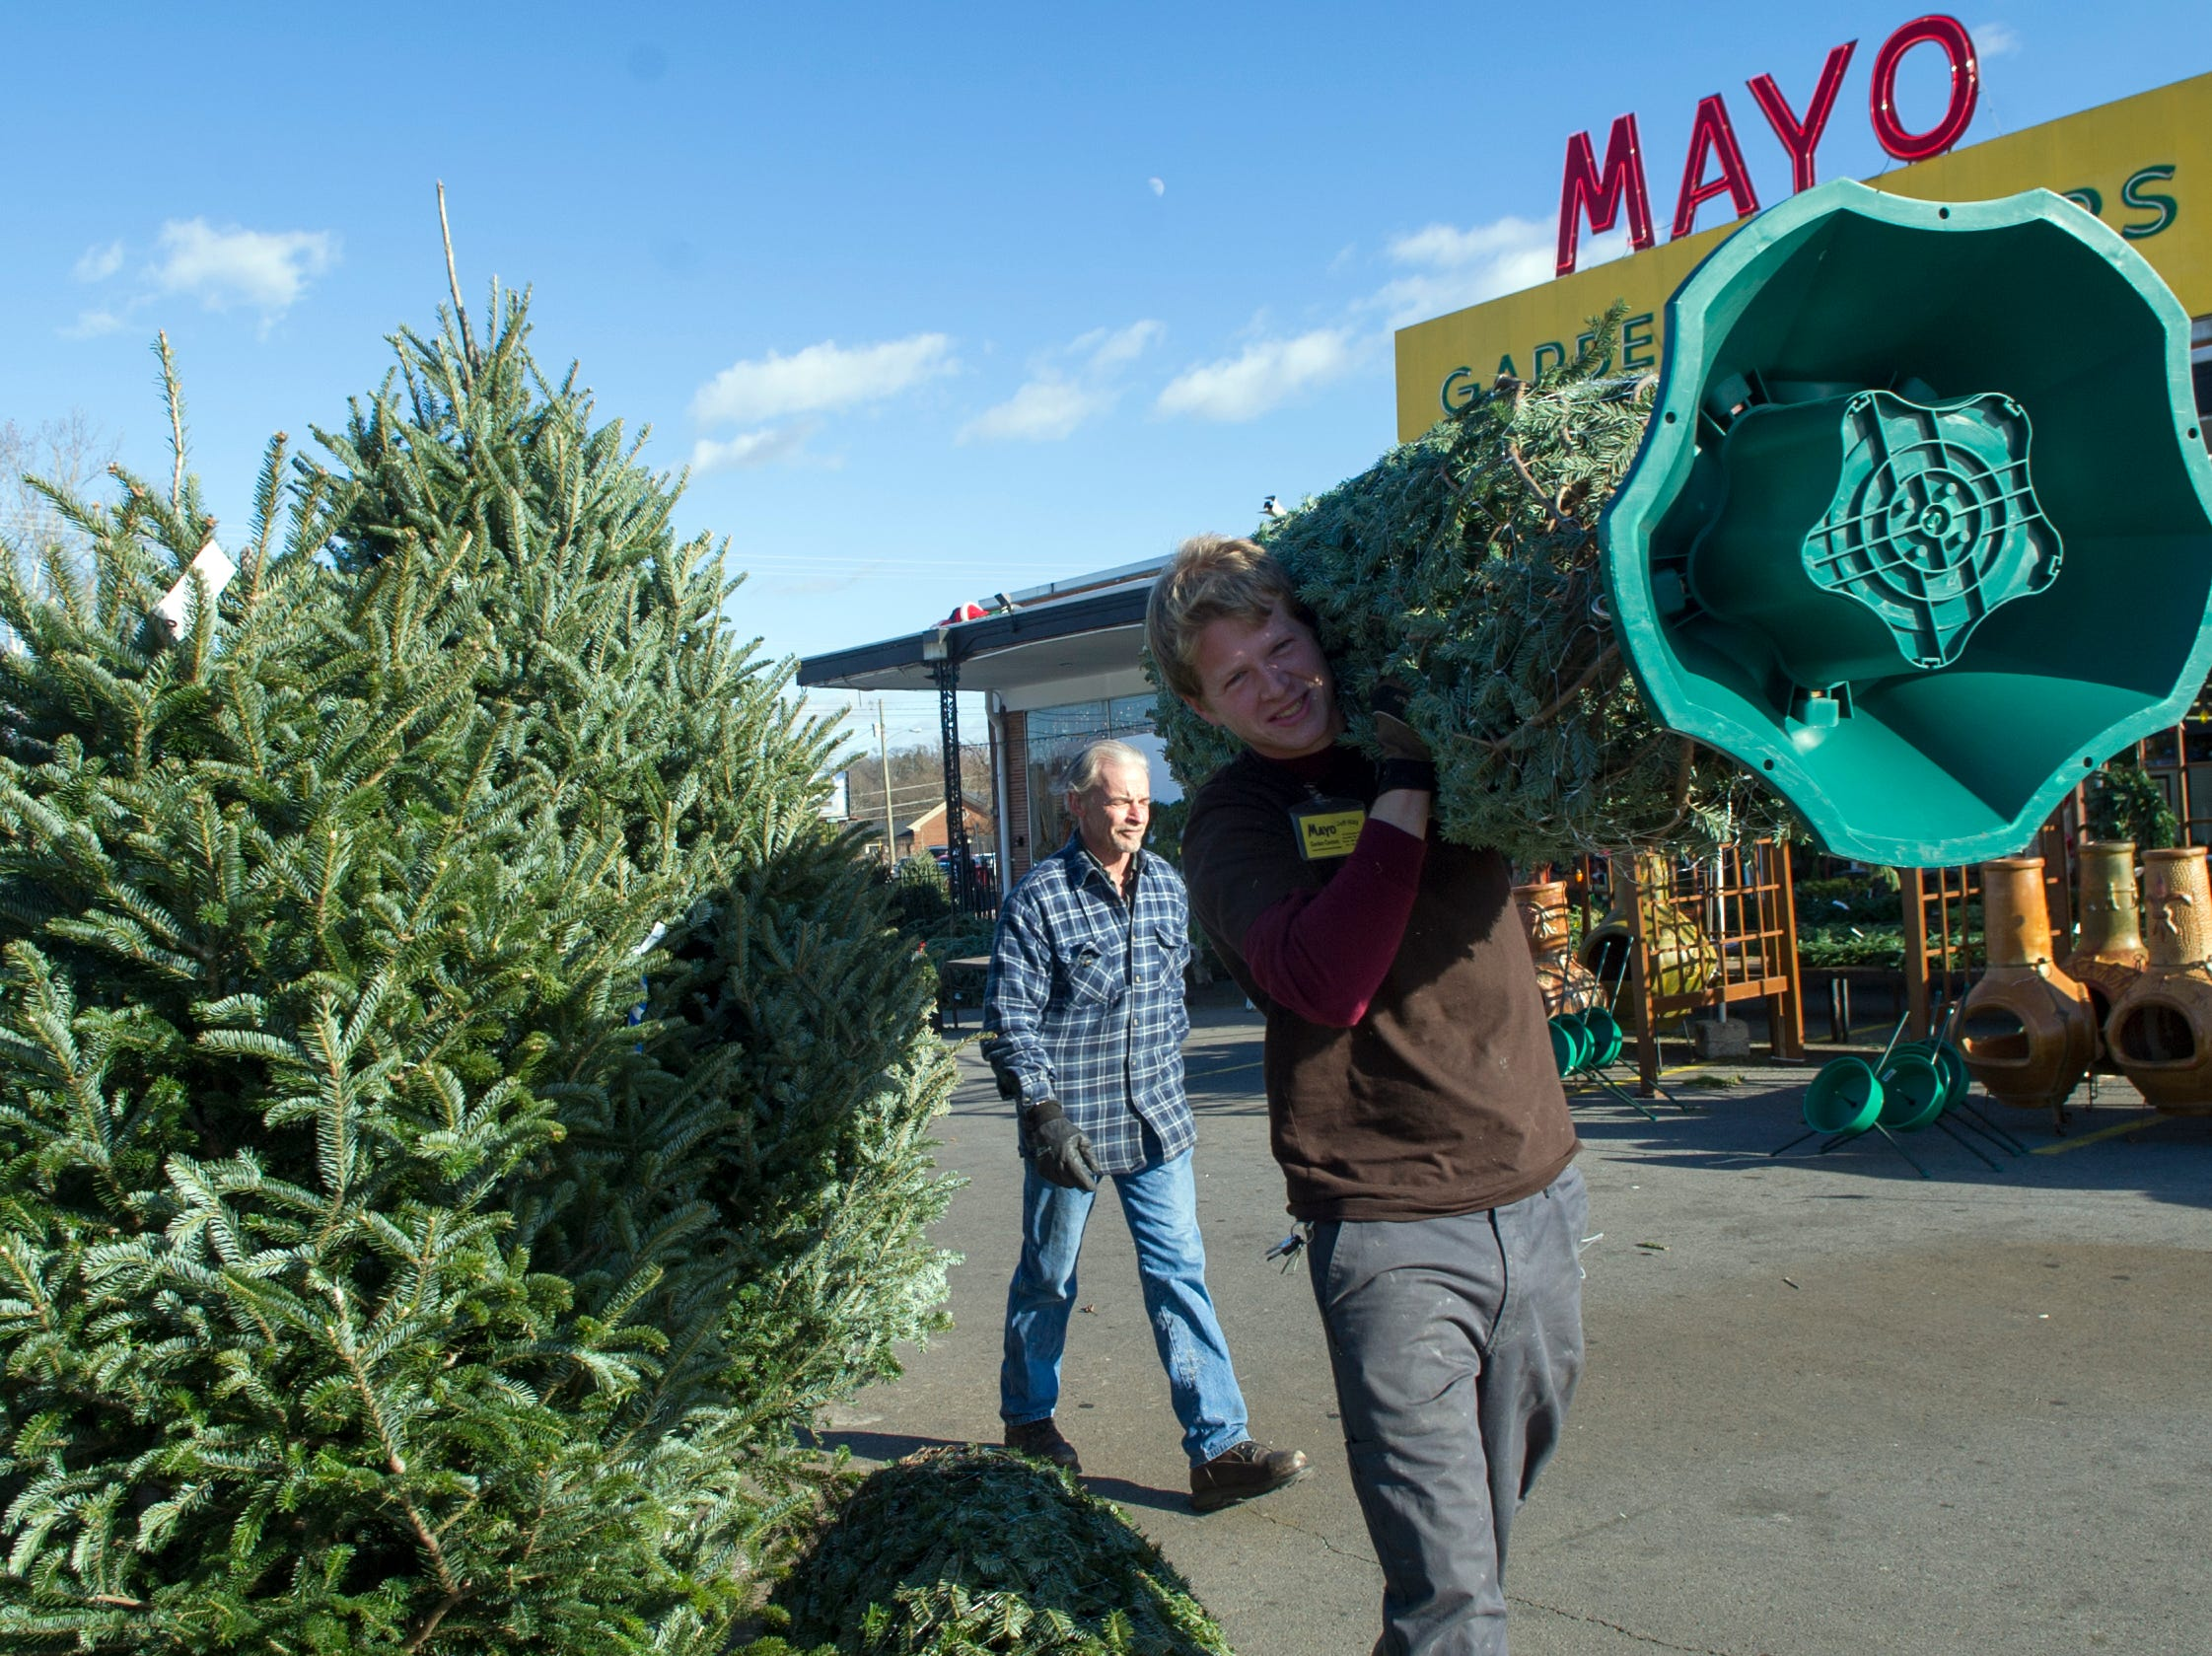 Mayo Garden Center employees Jeff Rizy, right, and Tom Blake, left, help deliver a Christmas tree to a customer's car at the store Friday, Dec. 21, 2012.